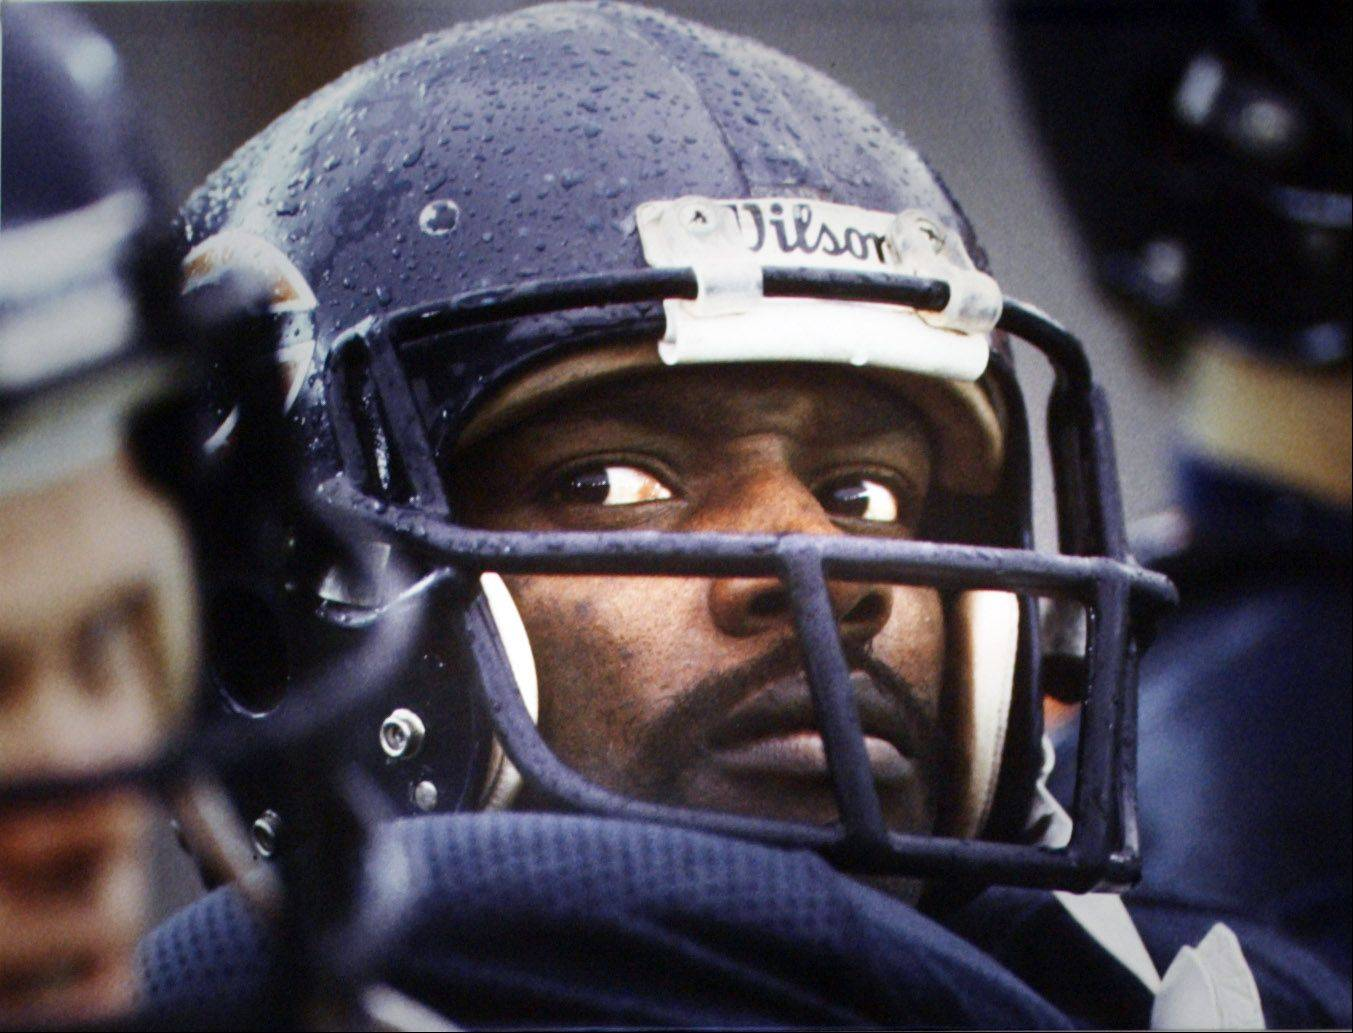 A new biography about Walter Payton�s life is upsetting many of his biggest fans.